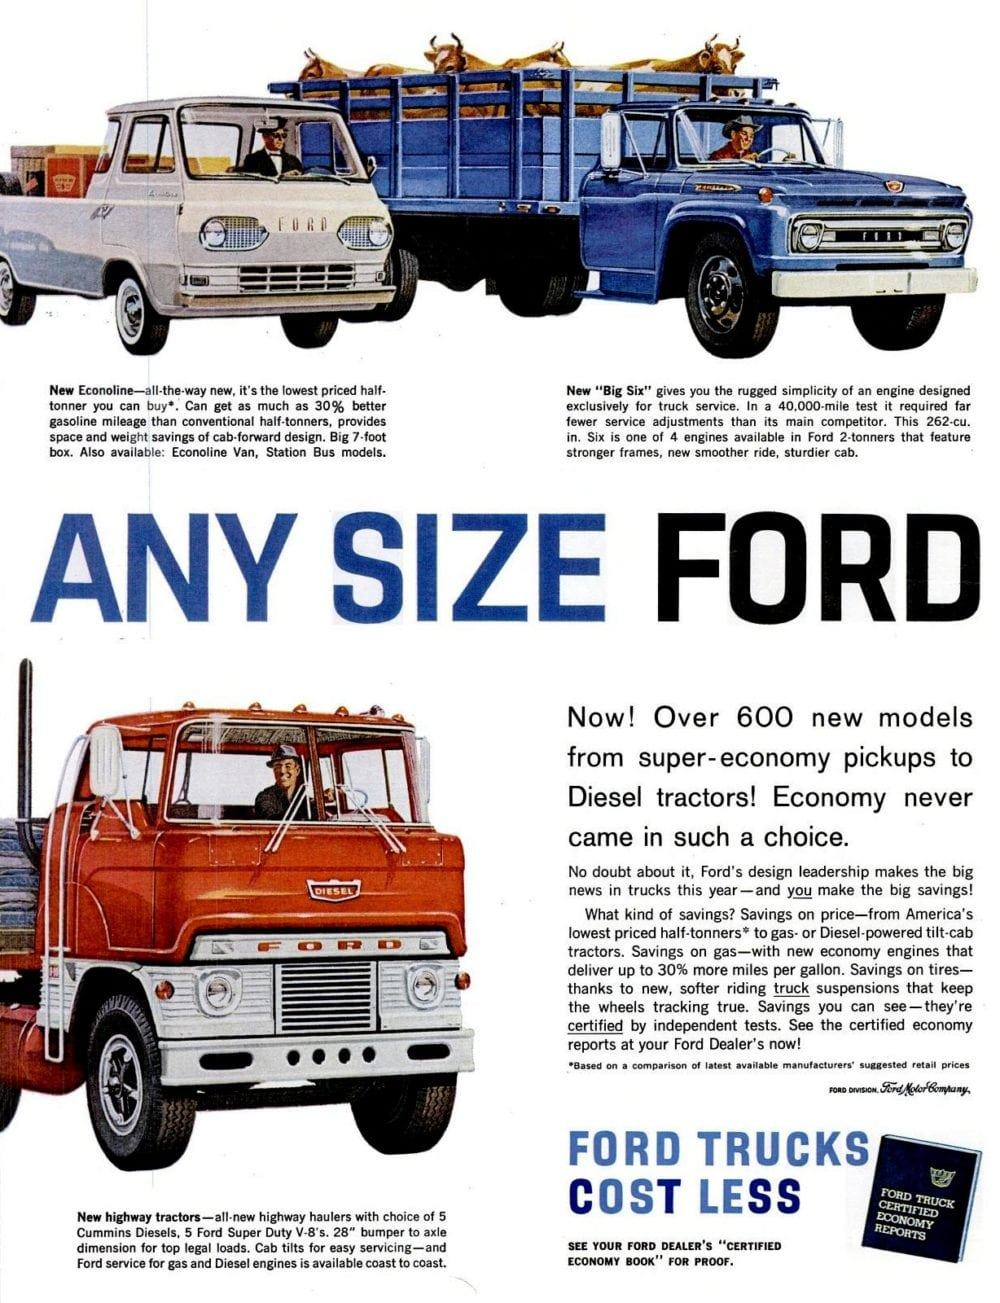 Any size Ford